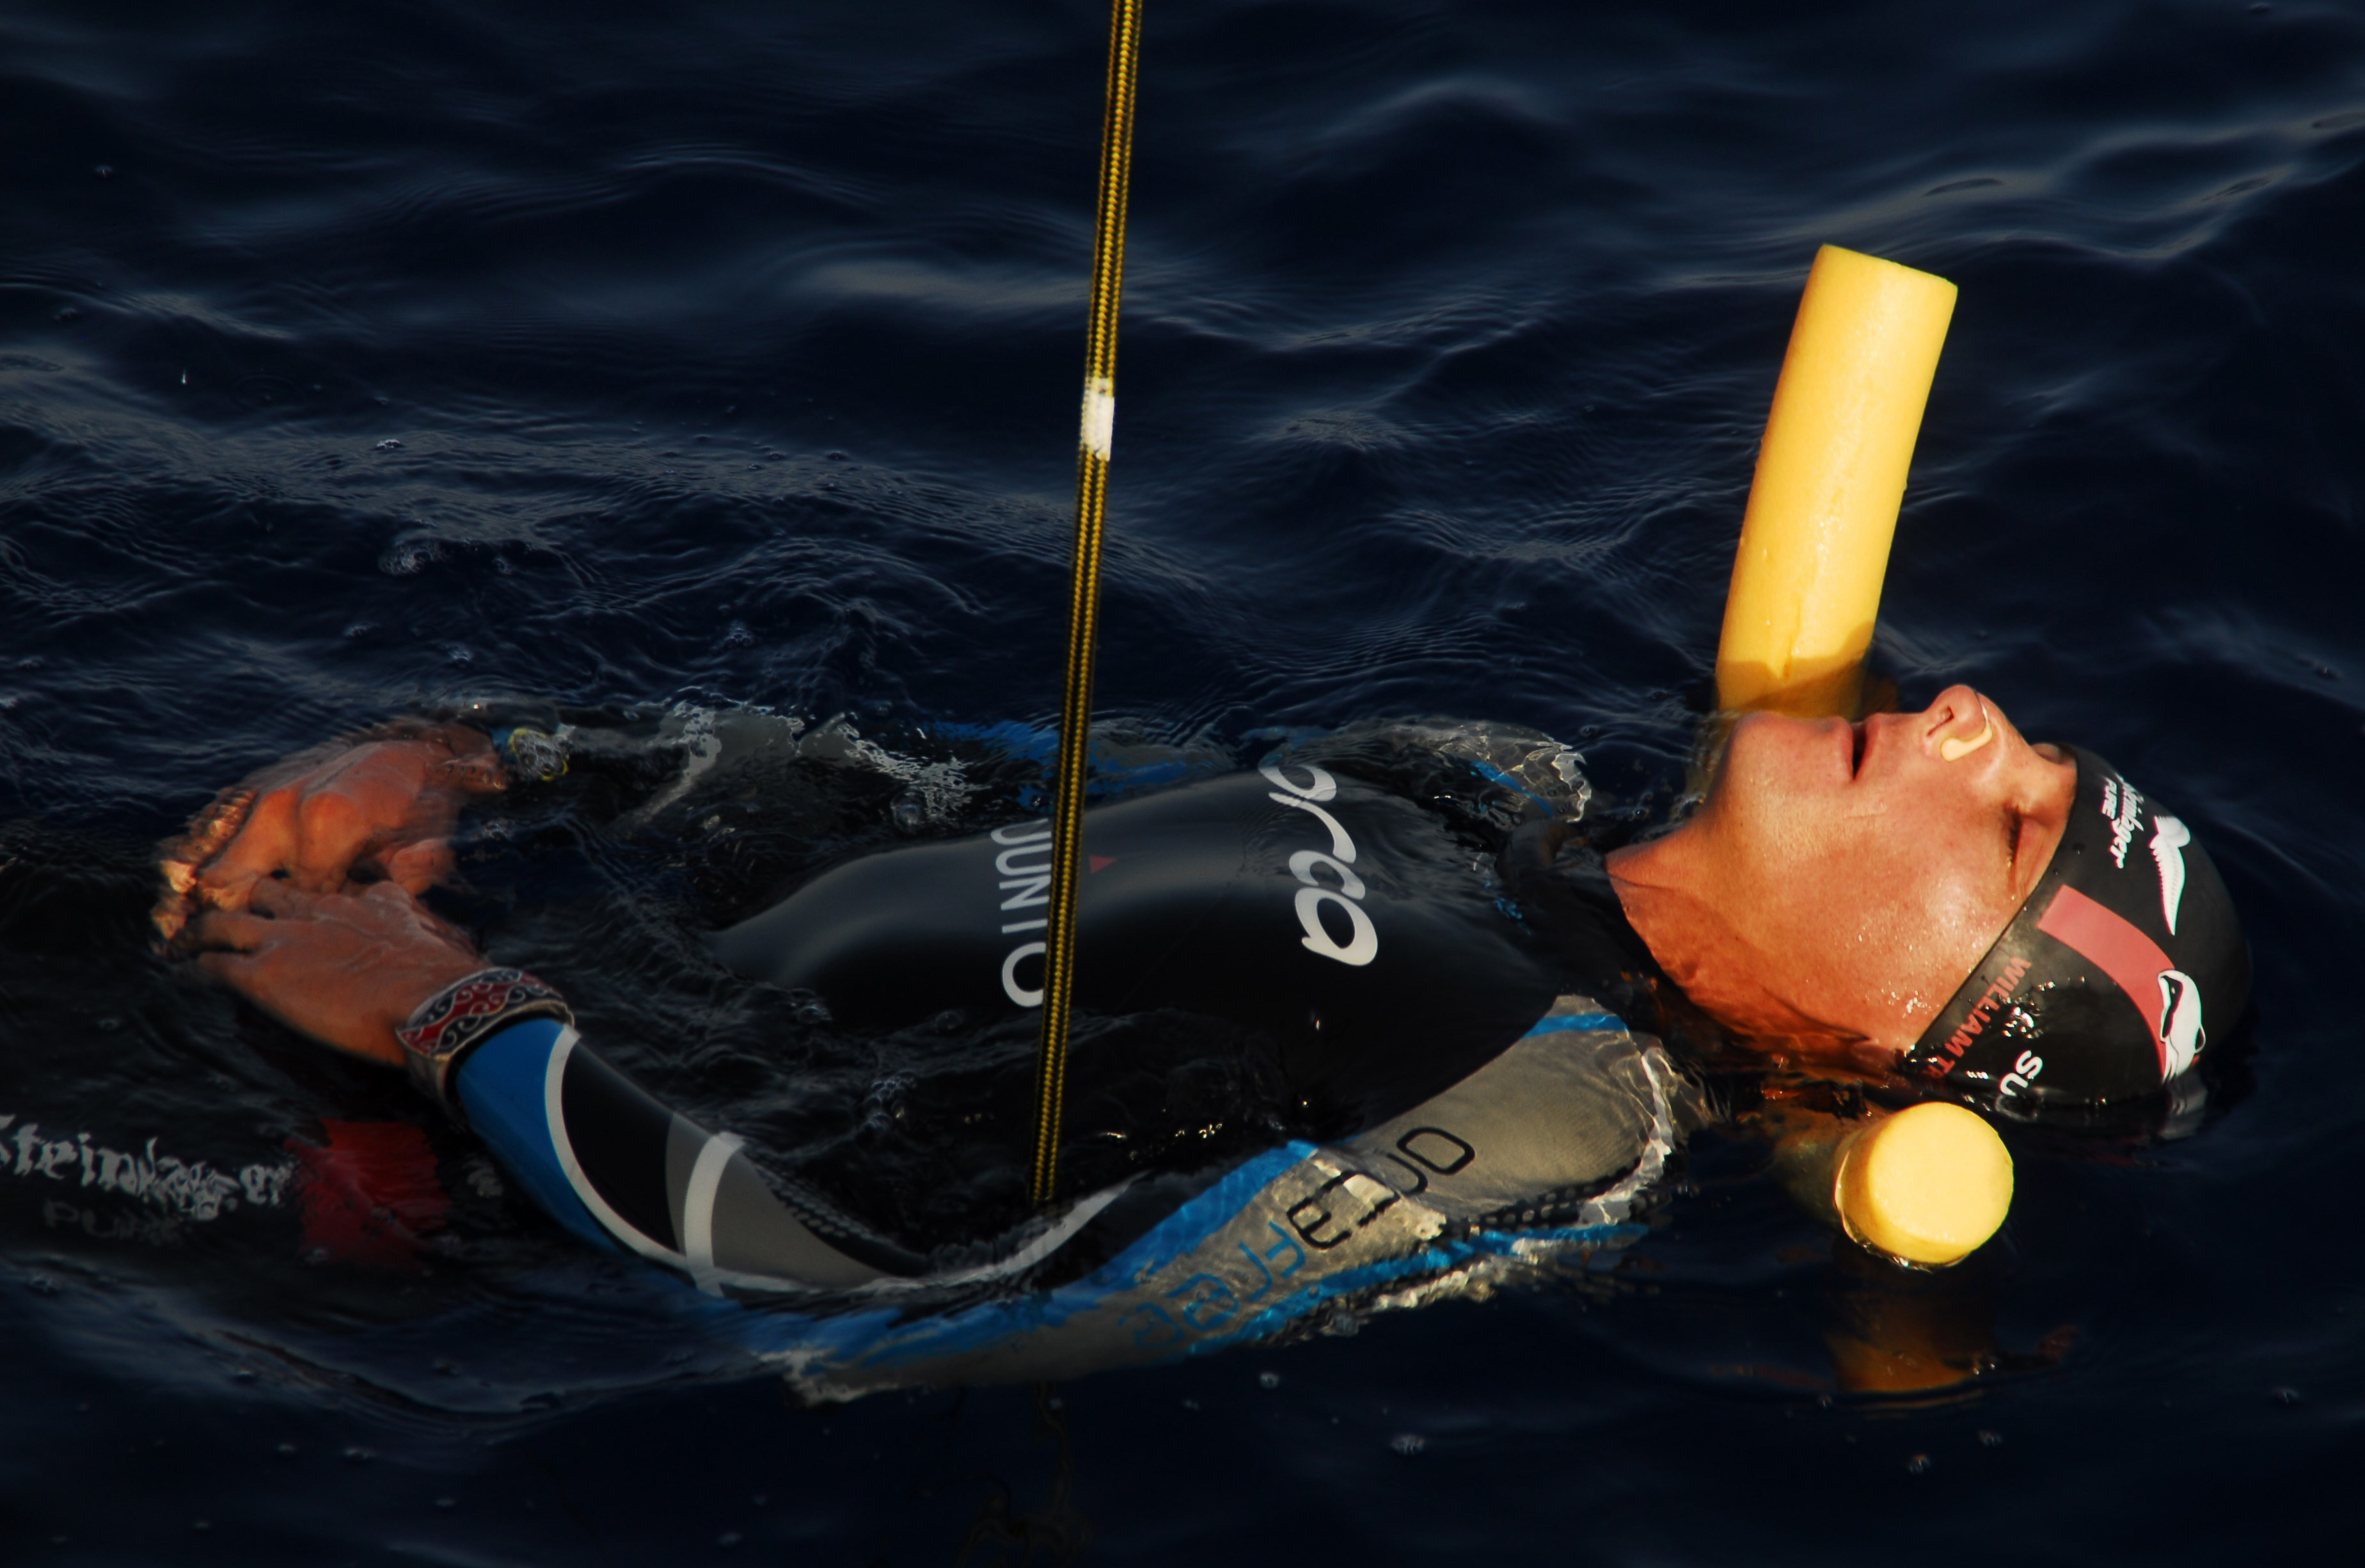 The King of Free-Diving Shatters His Own Record advise